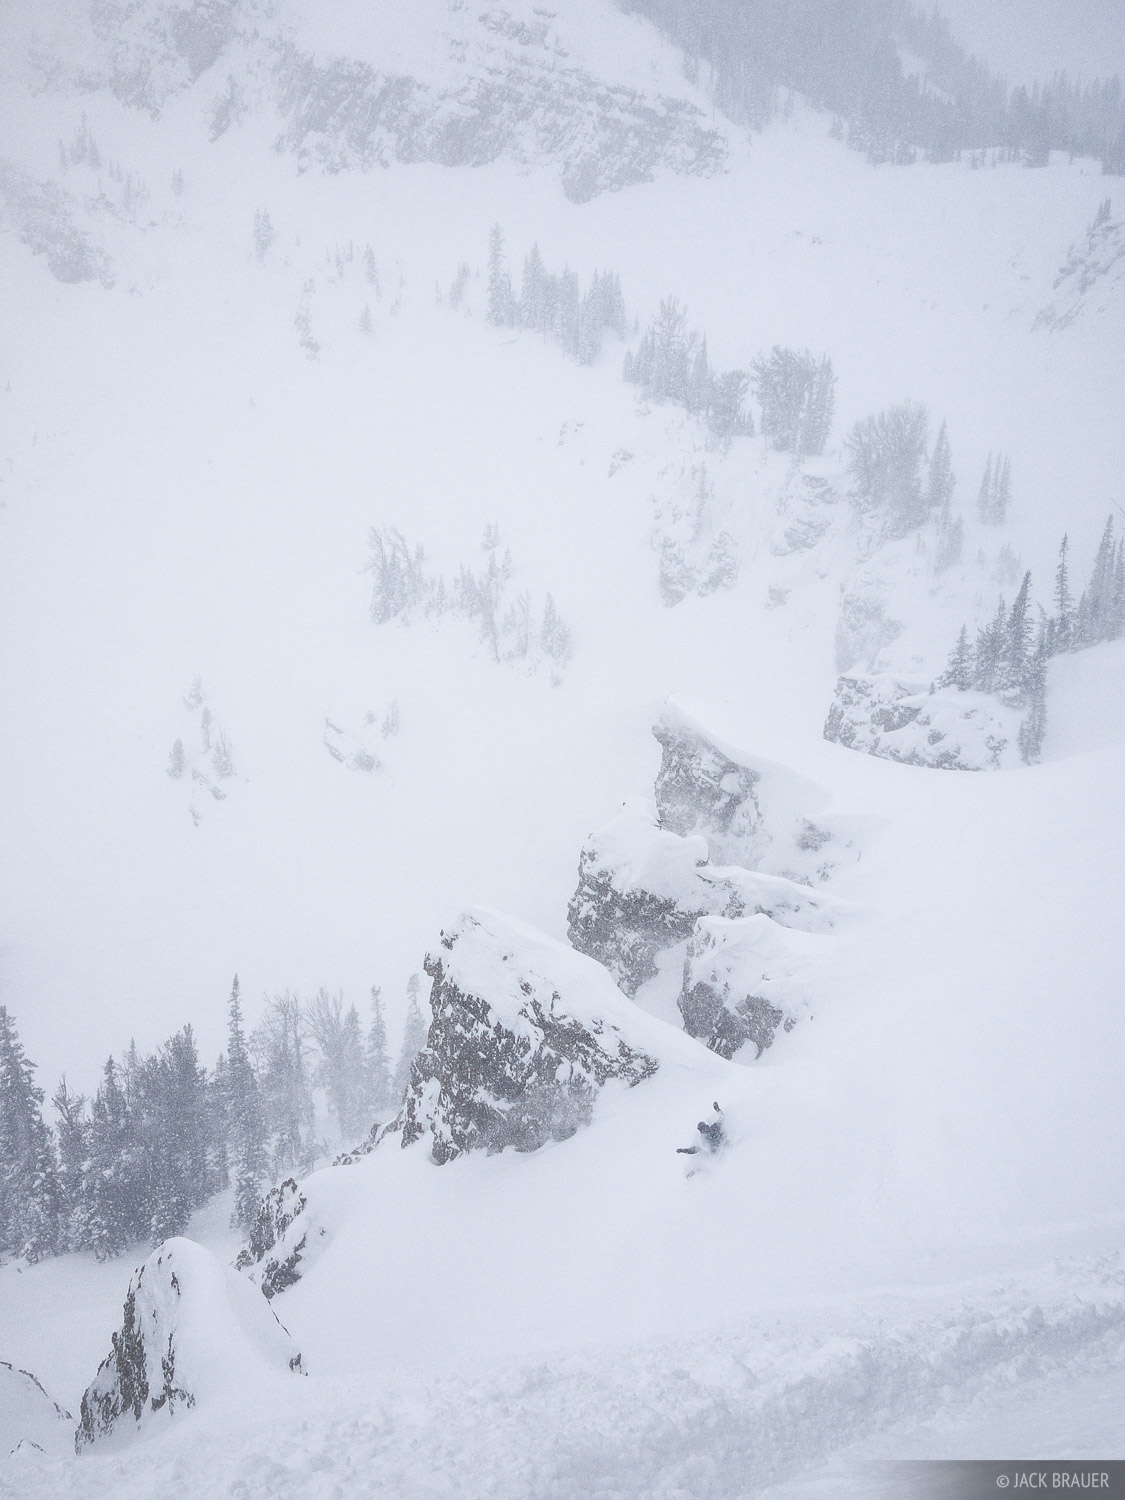 snowboarding, chute, Jackson Hole, Wyoming, photo